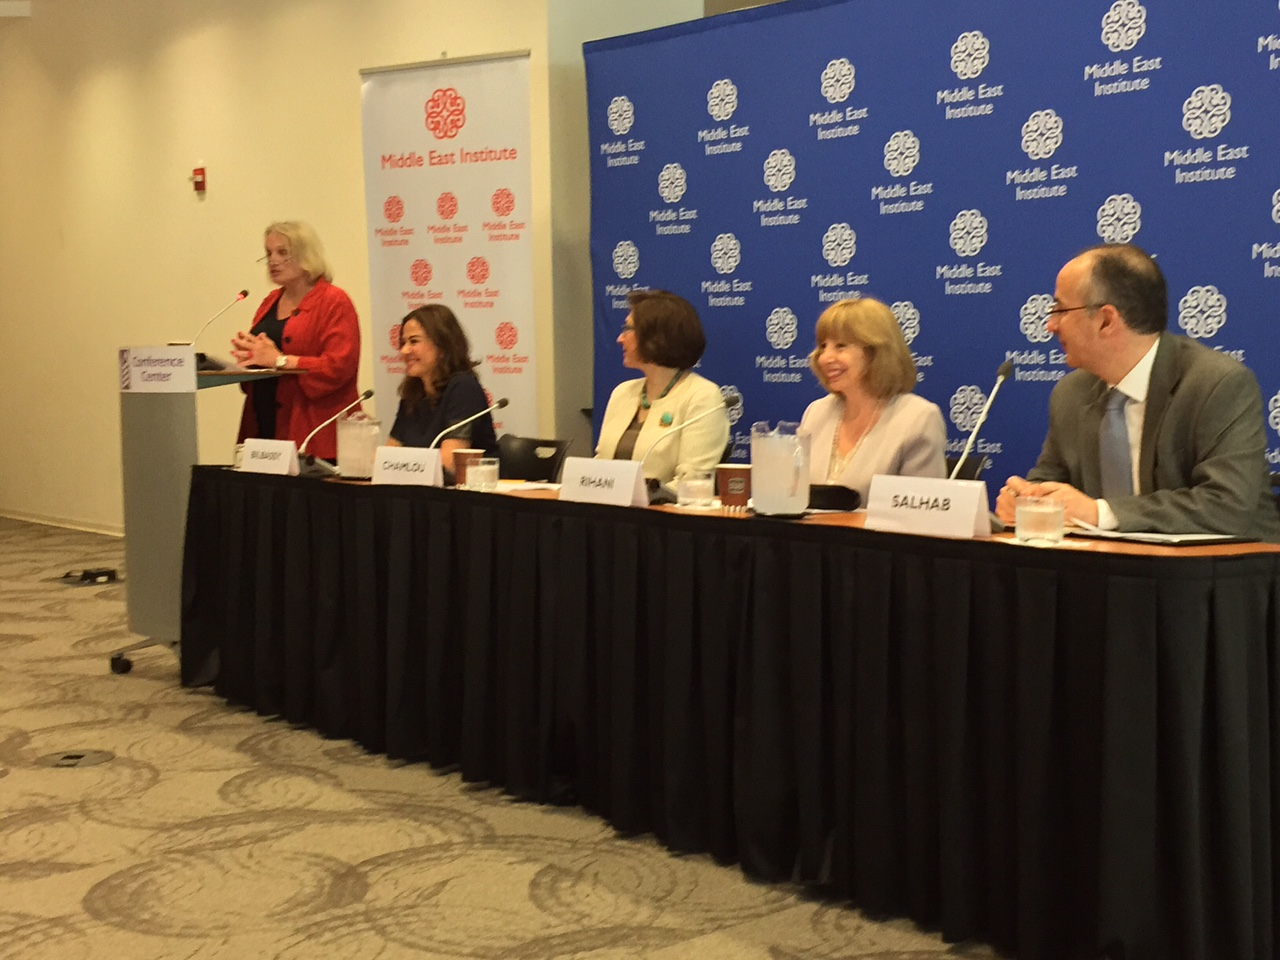 The MEI Panel was introduced by Amb. Wendy Chamberlin